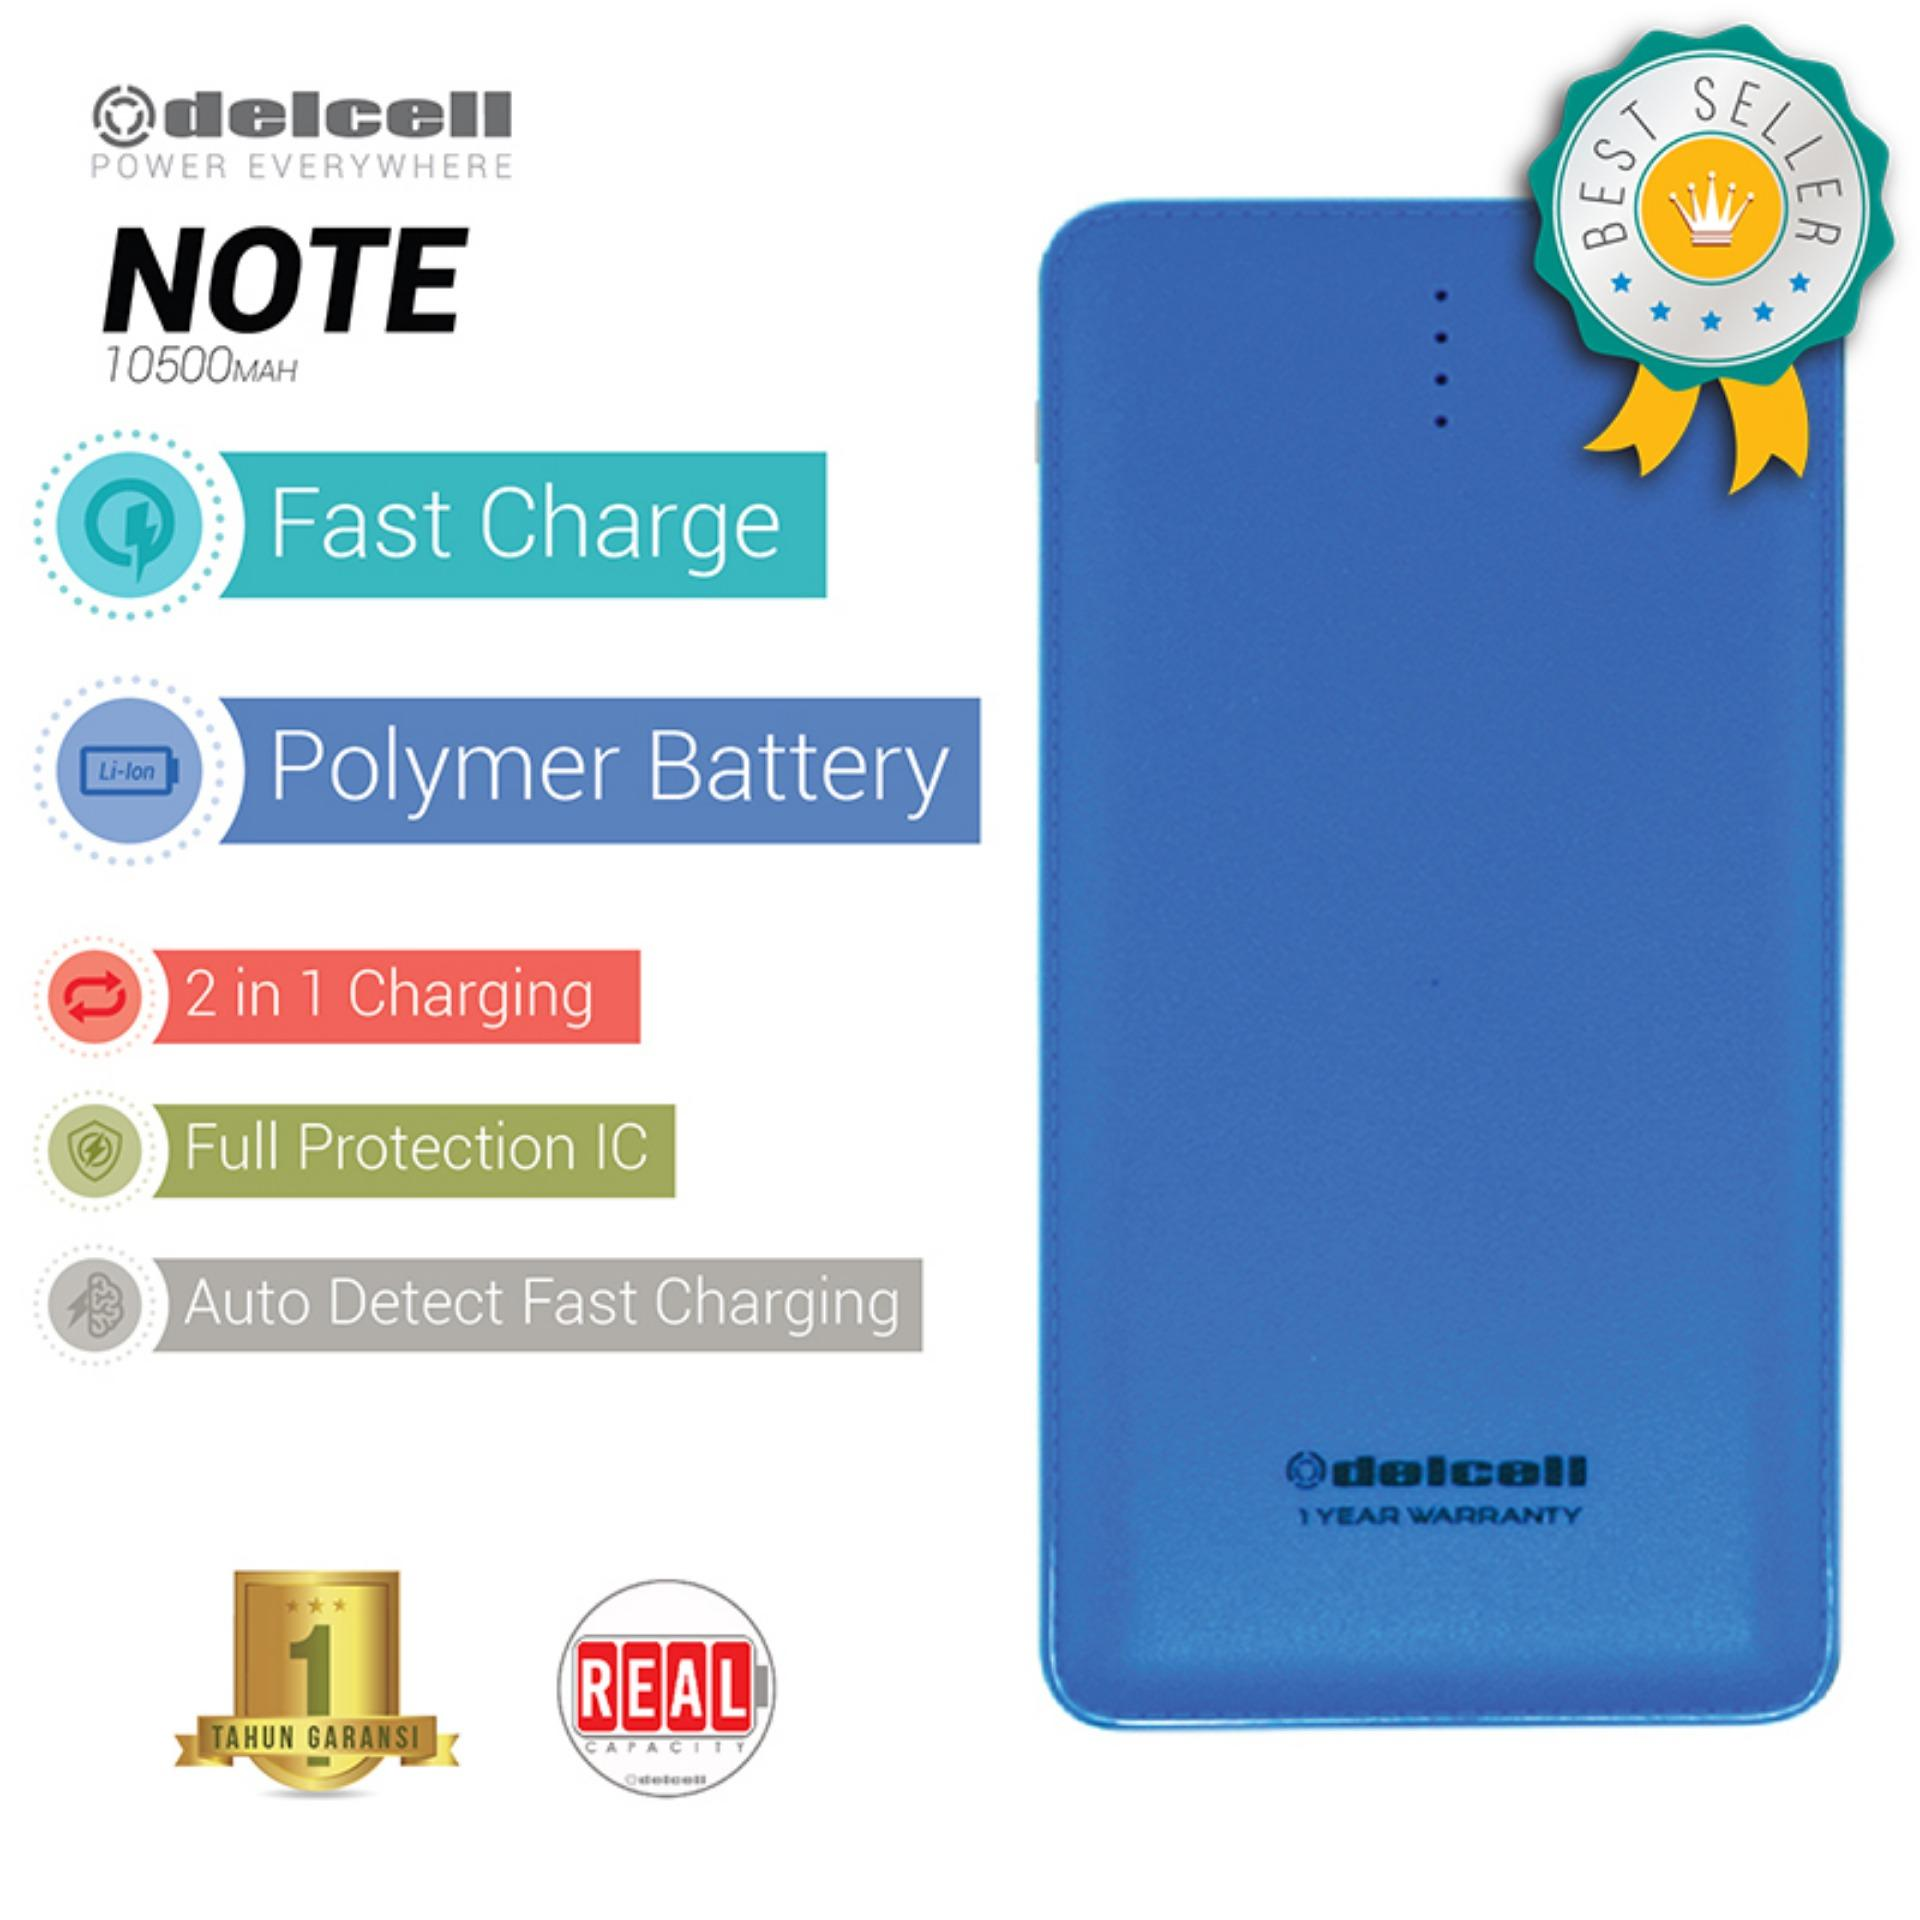 Delcell NOTE Powerbank 10500mAh Real Capacity Fast Charging Polymer Battery - Biru